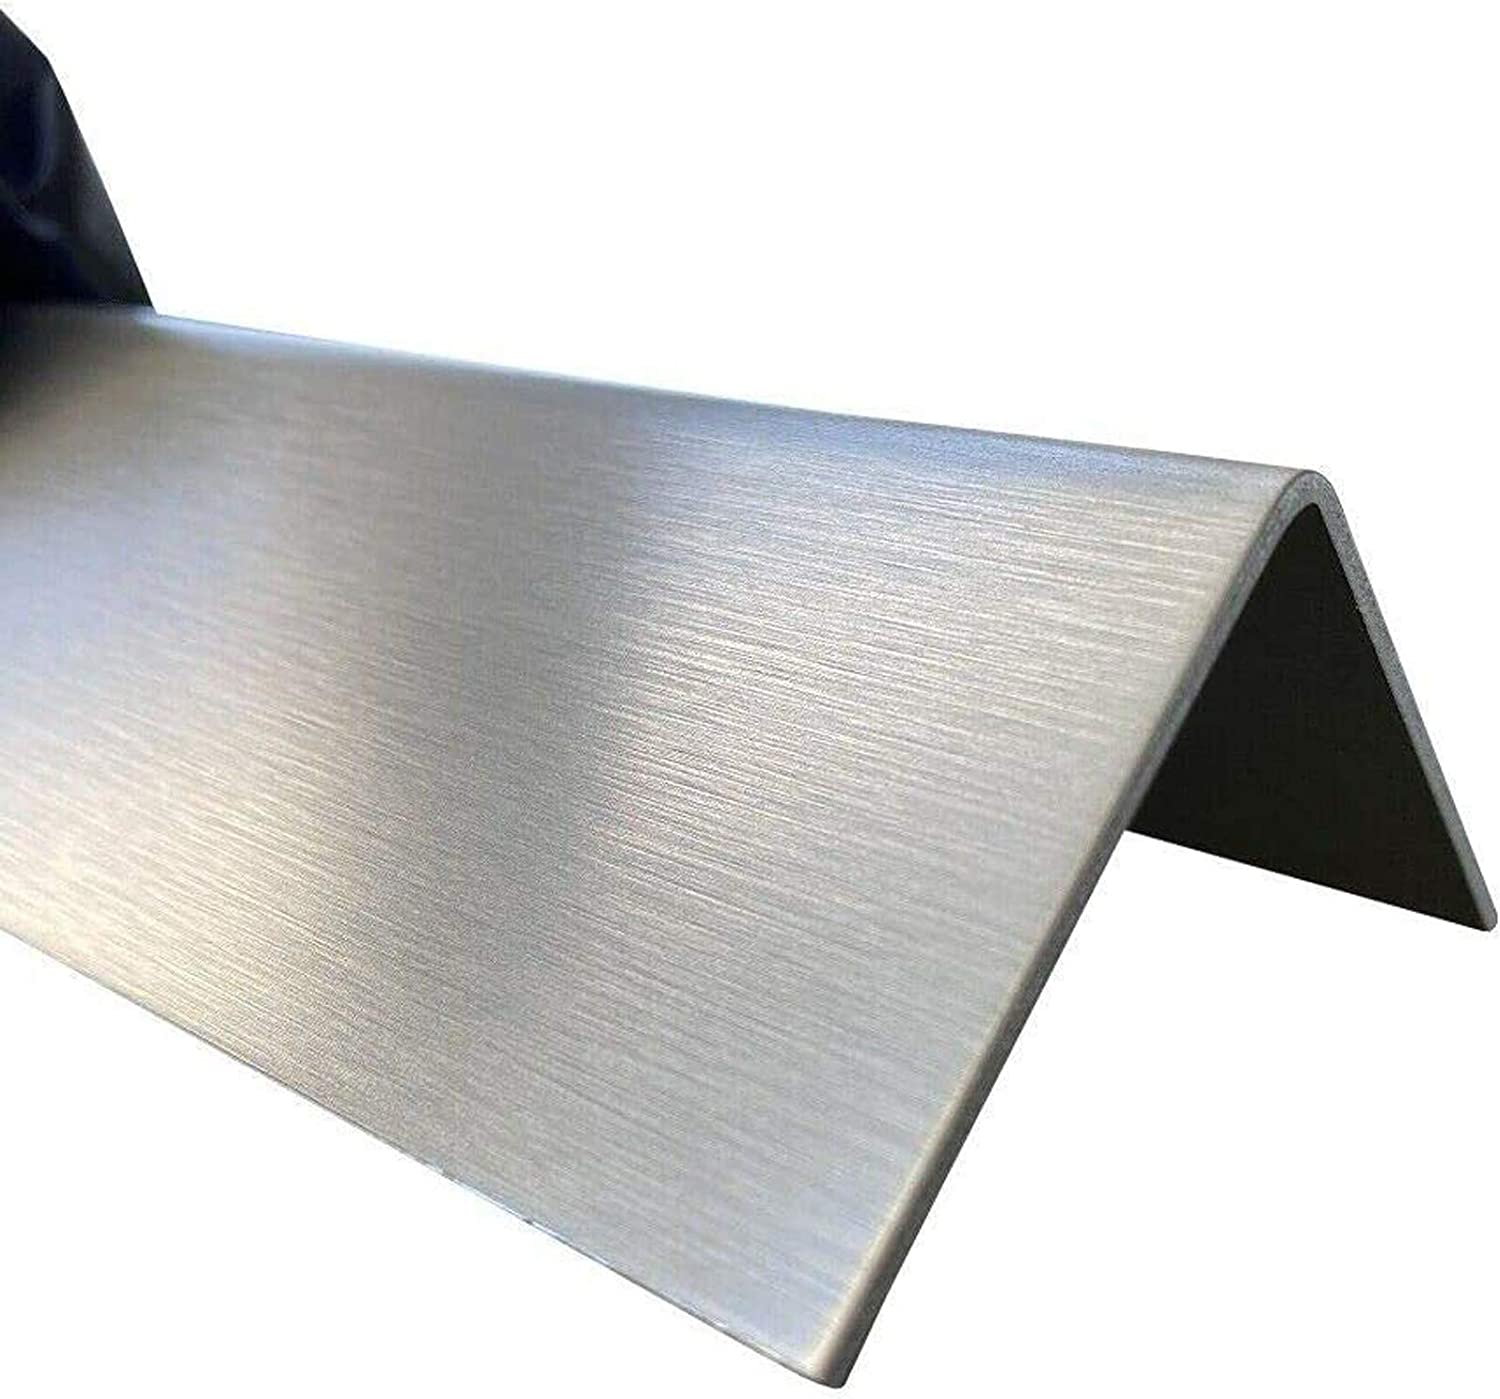 SHOUCAN Stainless Steel Angle Thickness 400mm 3-8mm Length New York Mall Award-winning store